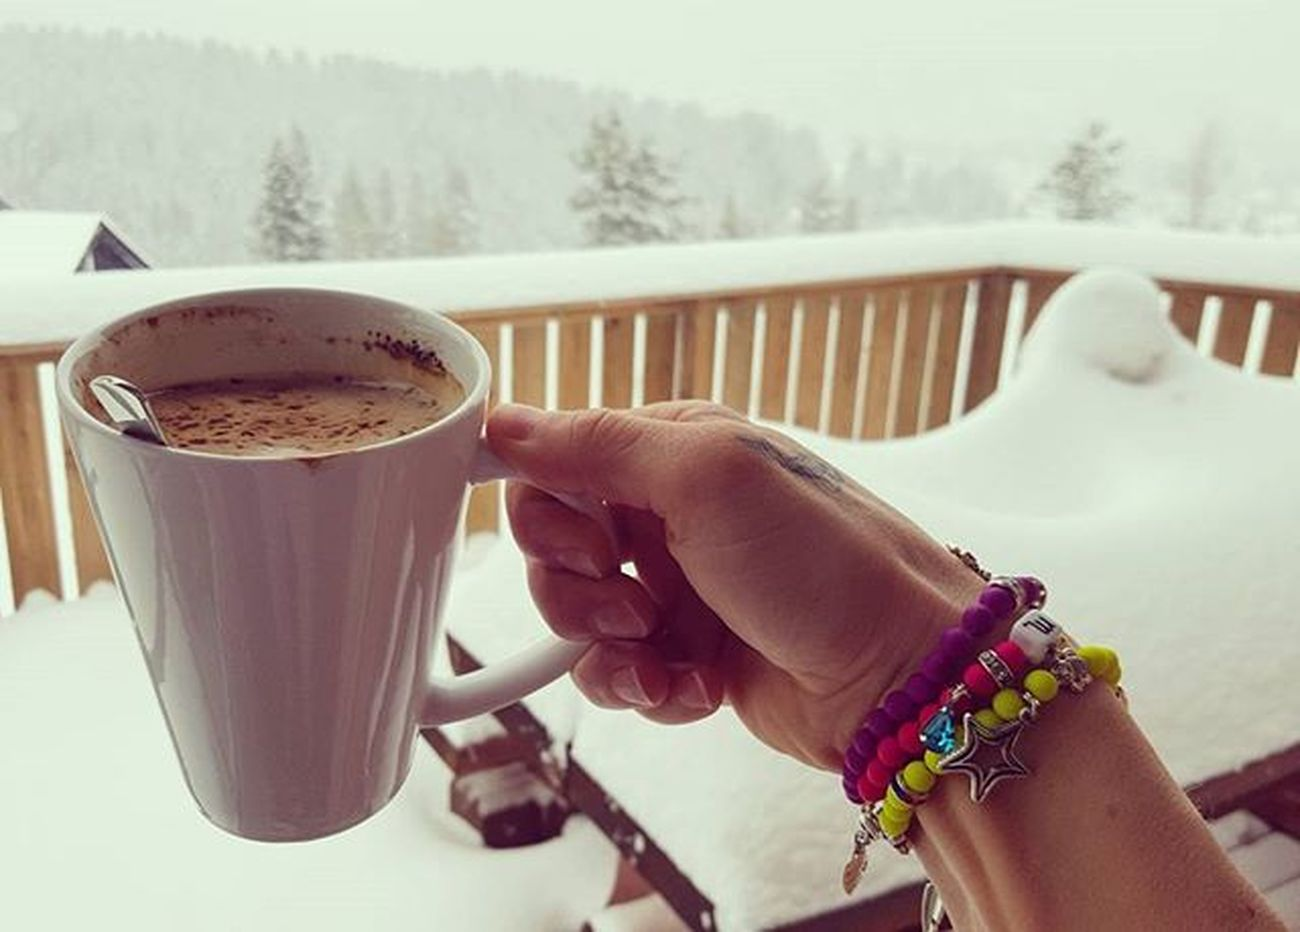 ❄❄❄HeLLo MarcH❄❄❄❄ Marchishere Winterisback Winterwonderland C_bracelets @c__bracelets Ilovecoffee Goodmorning Snowymorning Kongsberg Wu_norway Mittnorge IMissSpring Mylifemyadventure Lifeisgood Loves_nature Keeponsmiling Onemoremonth Iloveskiing ILoveMornings Dreamchasersnorway Maxjoy Fromwhereistand Ilovemylife Ig_neverstopexploring Nevergiveup